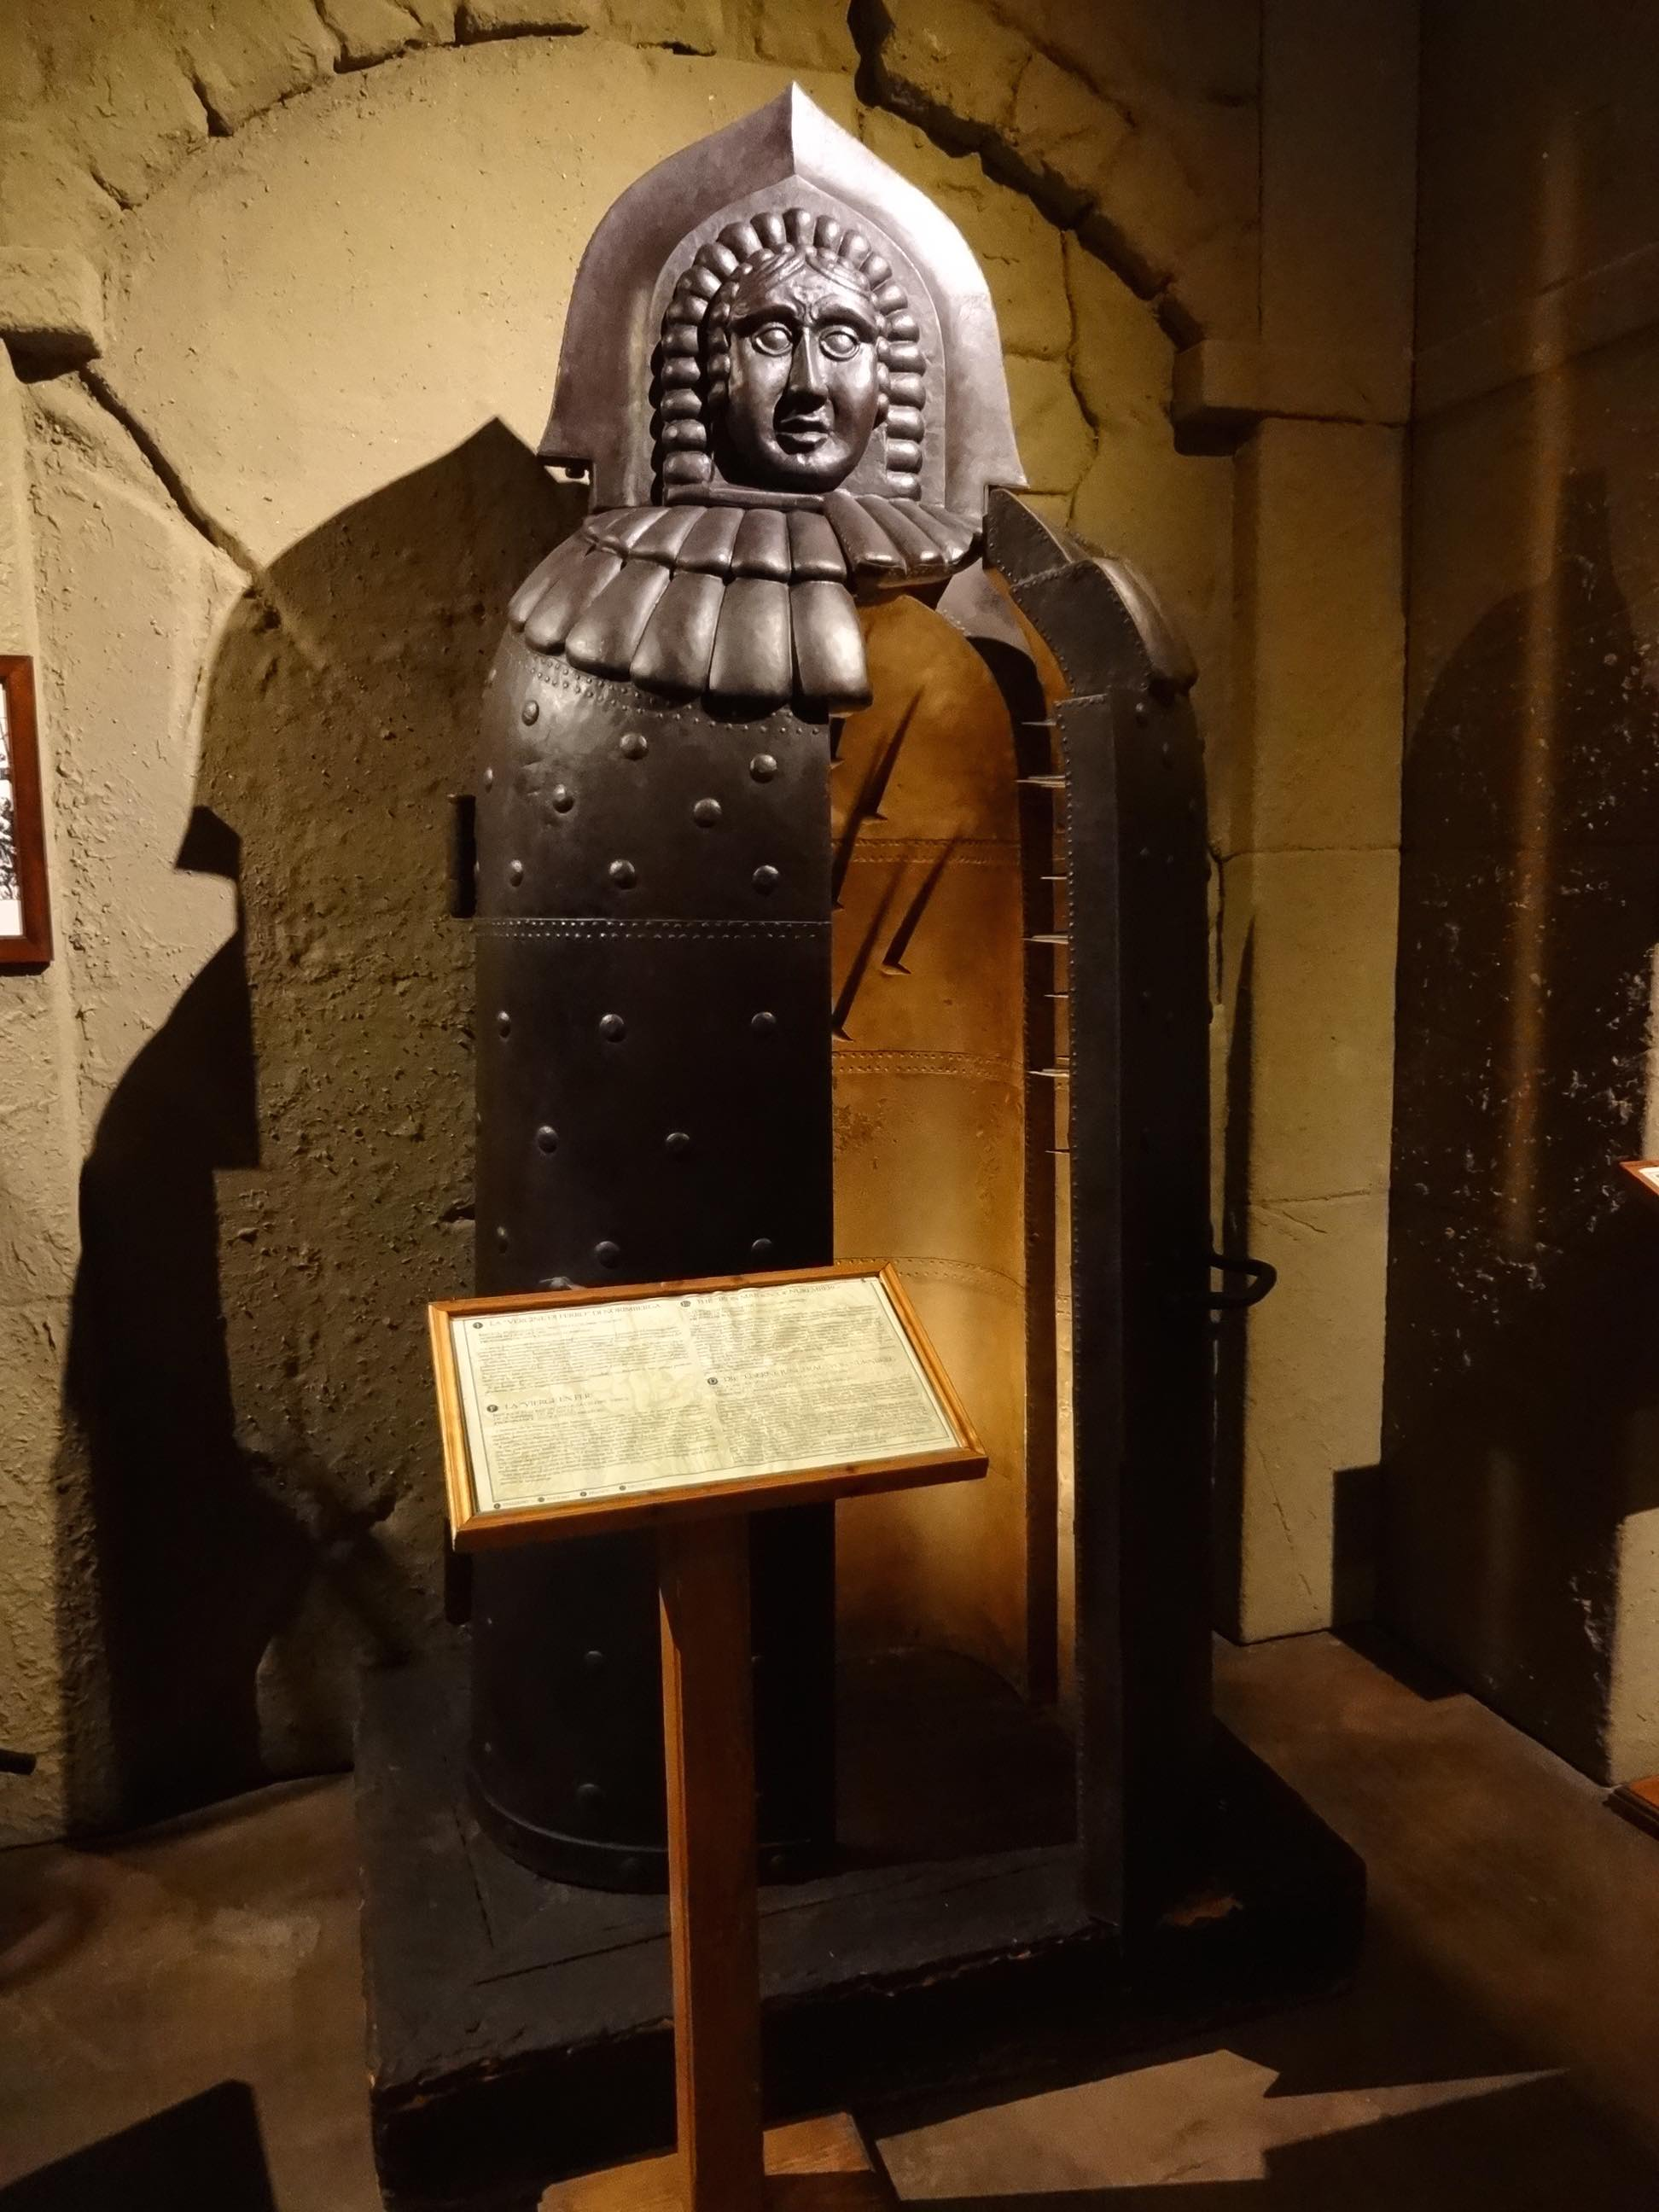 Iron Maiden Device in a Museum